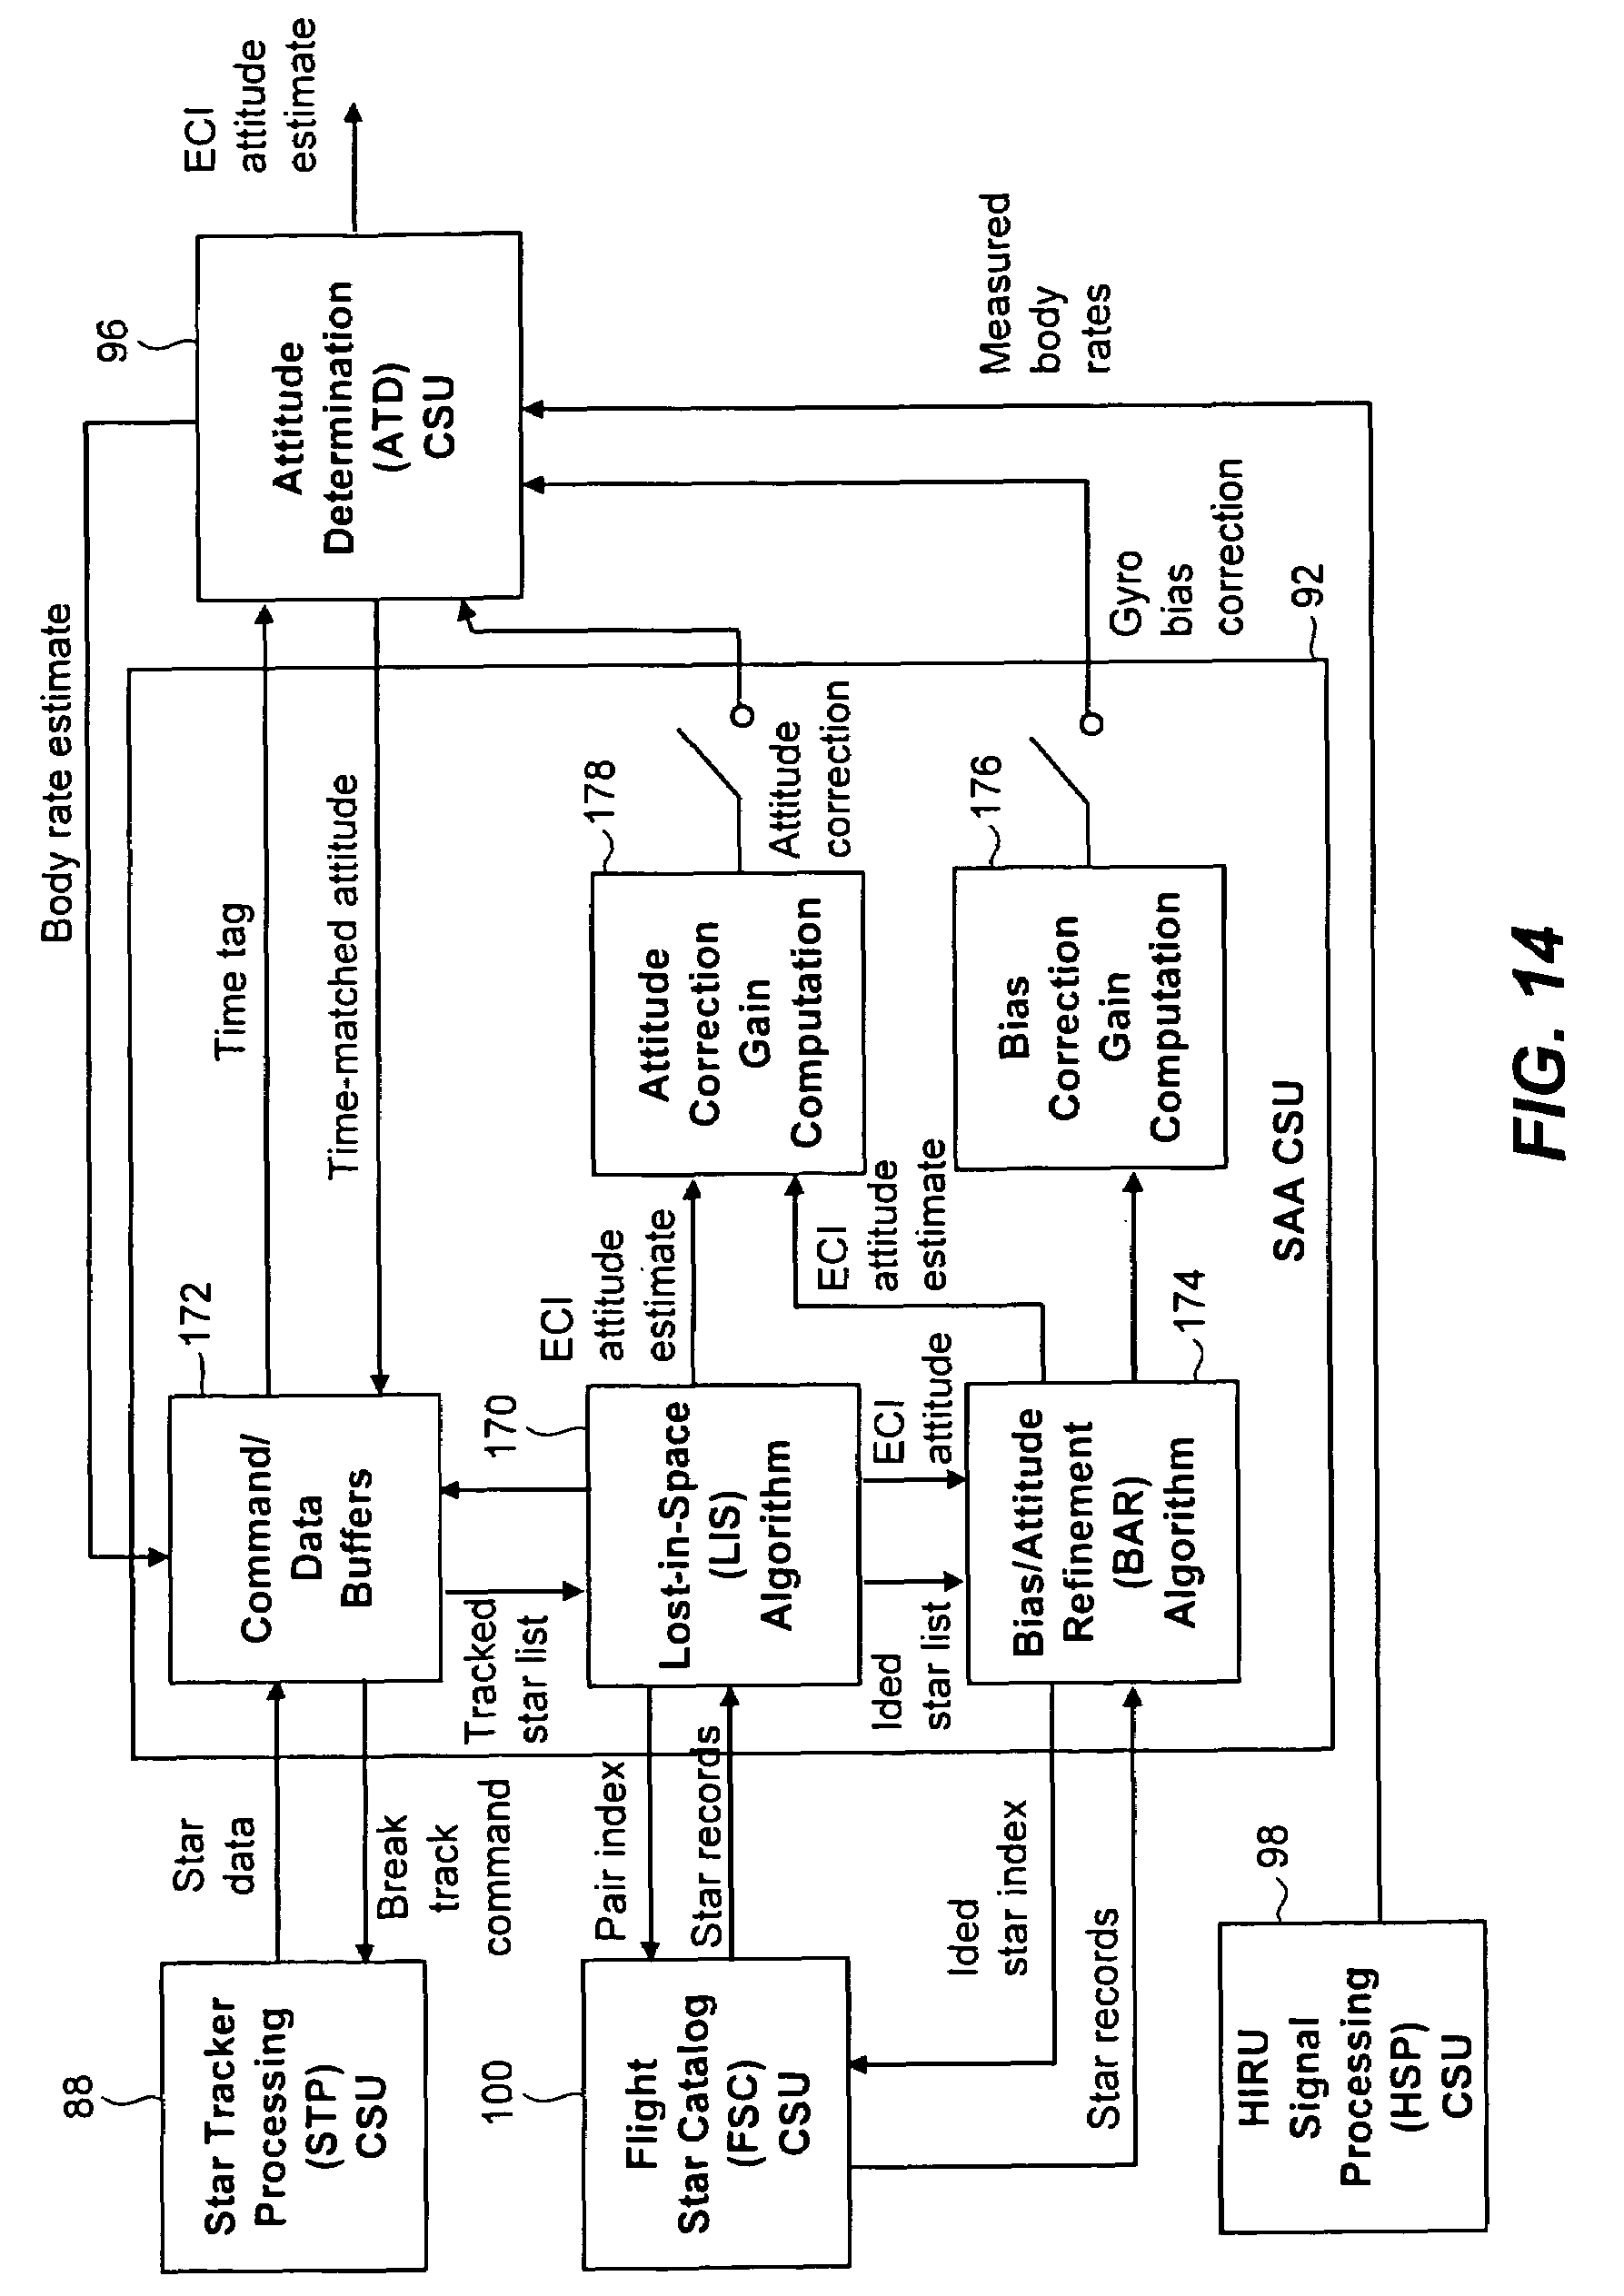 Patent Us7665695 Unified Attitude Control For Spacecraft Transfer Block Diagram Of The And Maneuvering Electronics Drawing